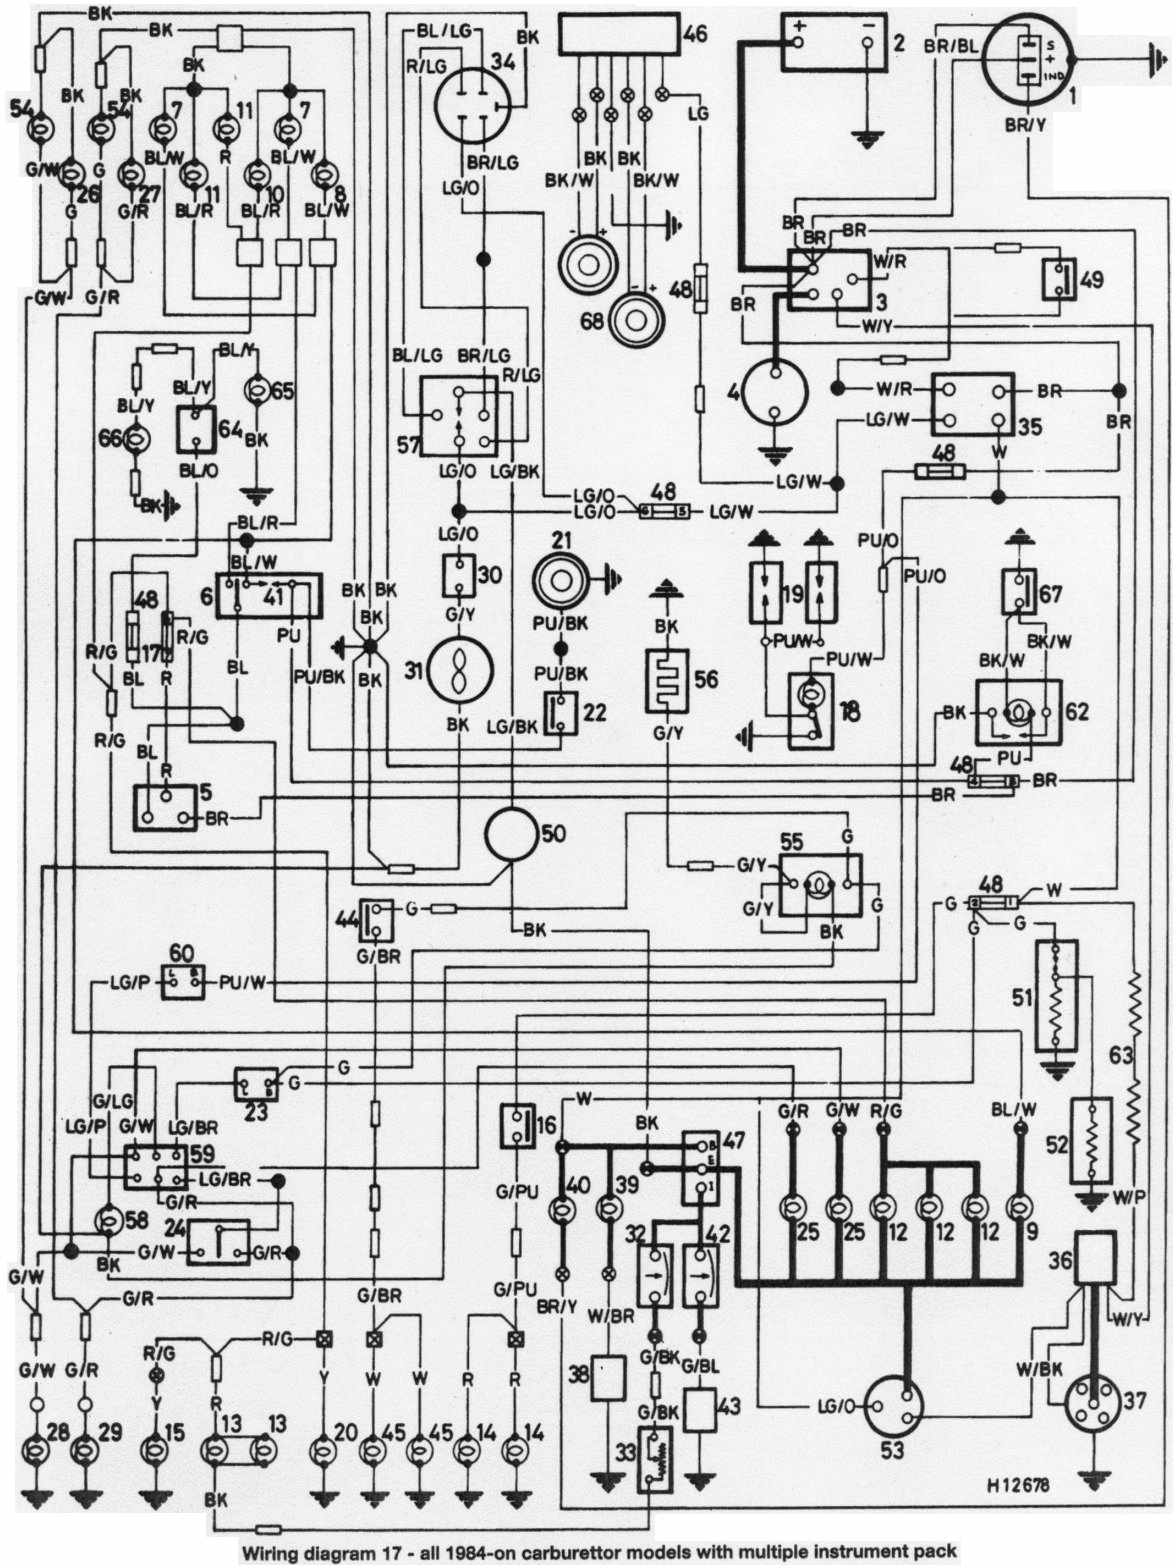 wiring diagram of 1984 onwards all mini series with multiple instrument pack?t\=1508499130 bmw mini wiring diagram gem e2 wiring diagrams \u2022 wiring diagrams 1988 volvo 740 wiring diagram at love-stories.co